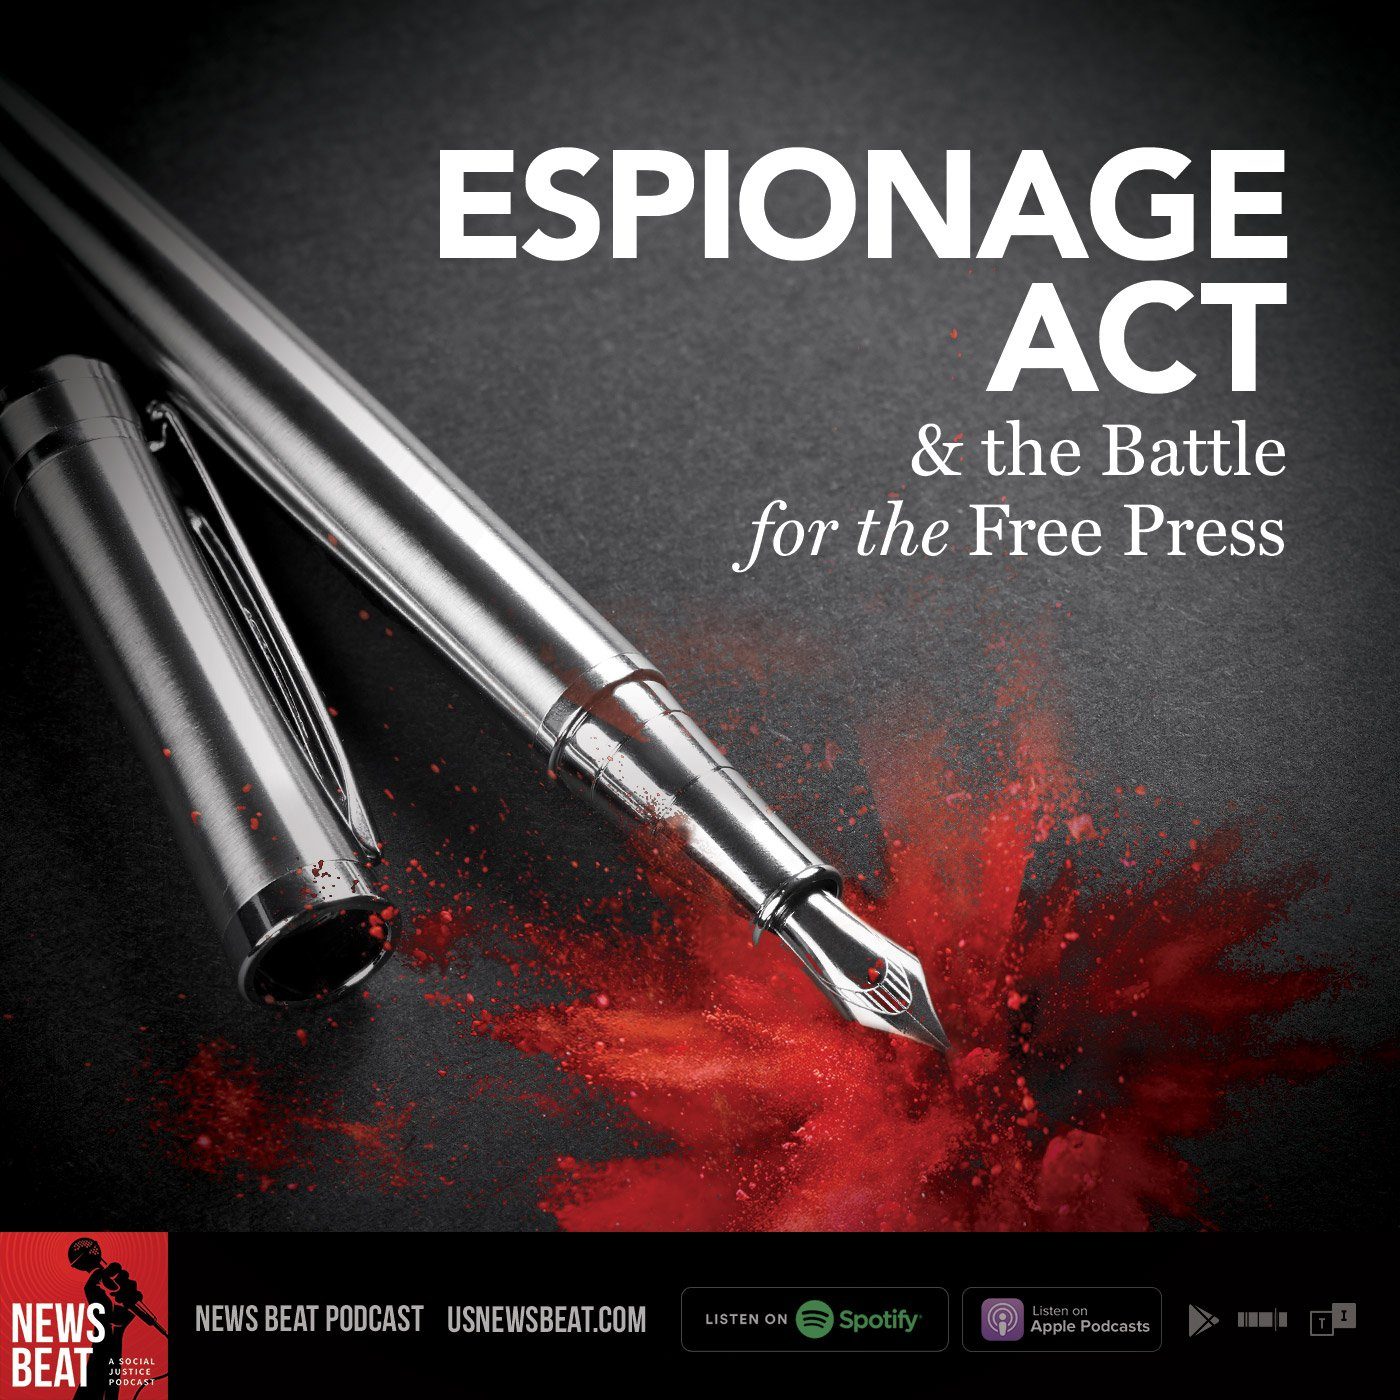 Espionage Act